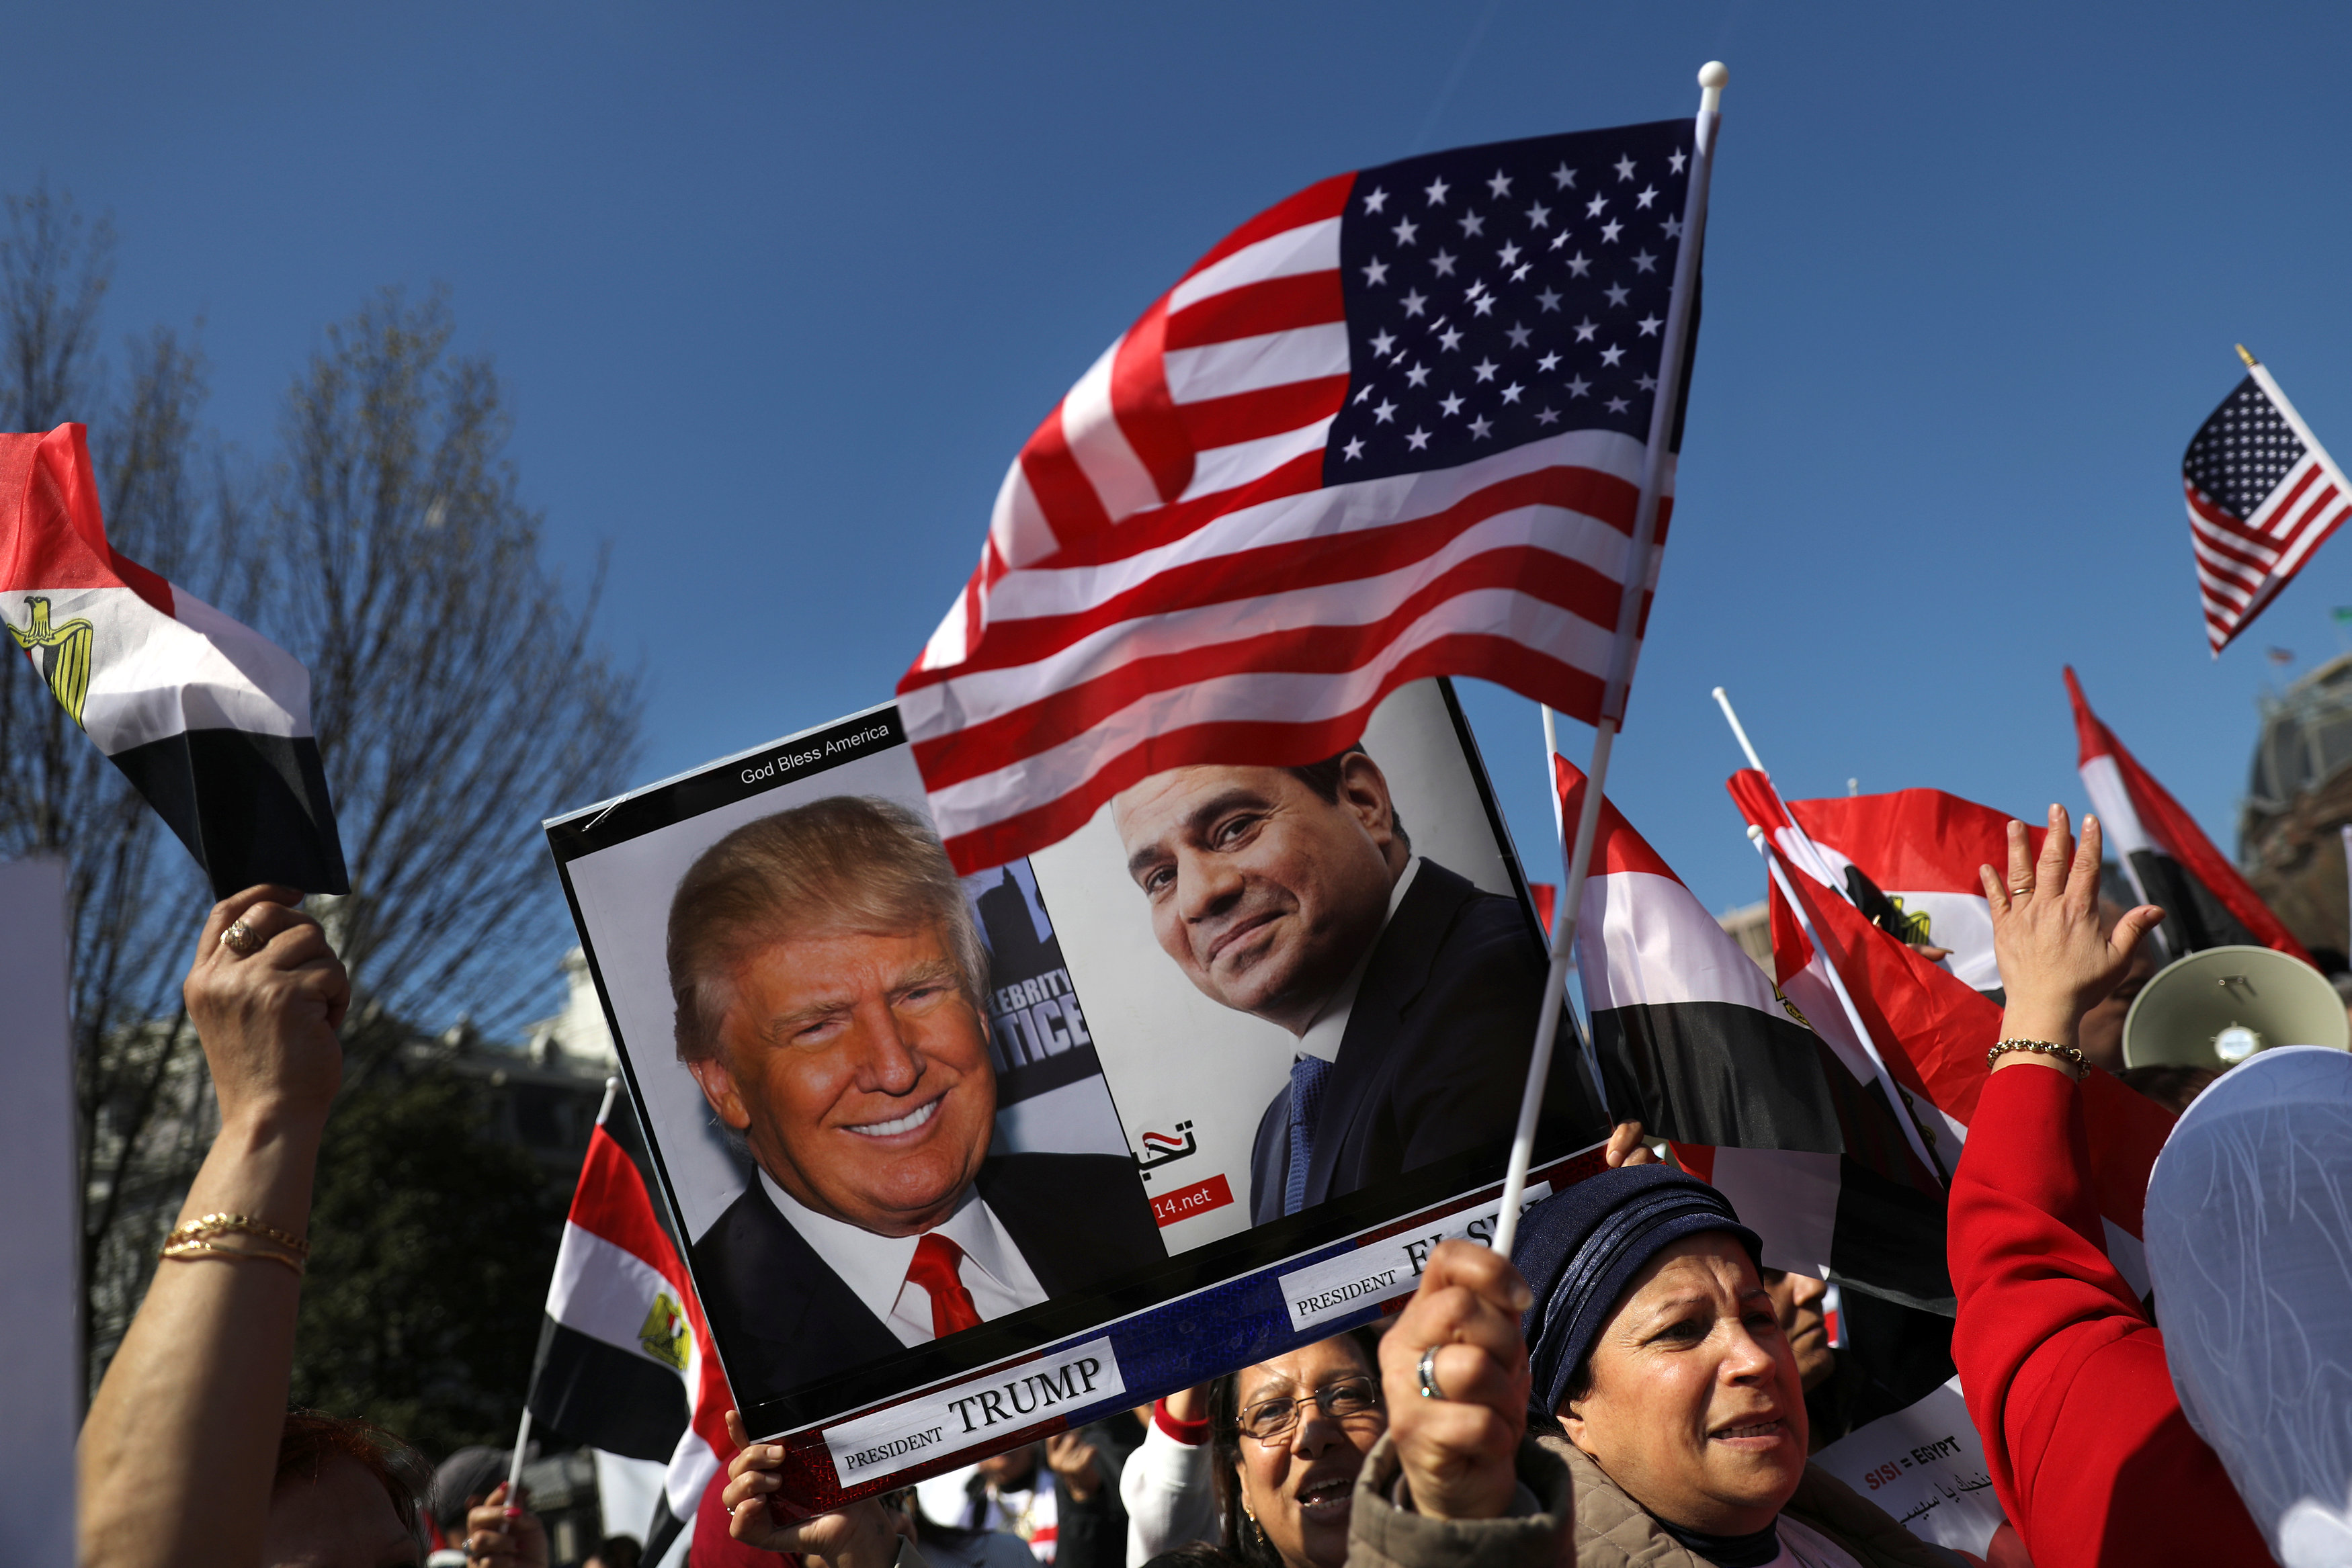 Supporters of Egypt's President Abdel Fattah al-Sisi gather outside the White House prior to his arrival for a meeting with U.S. President Donald Trump in Washington on April 3, 2017. (REUTERS/Carlos Barria)